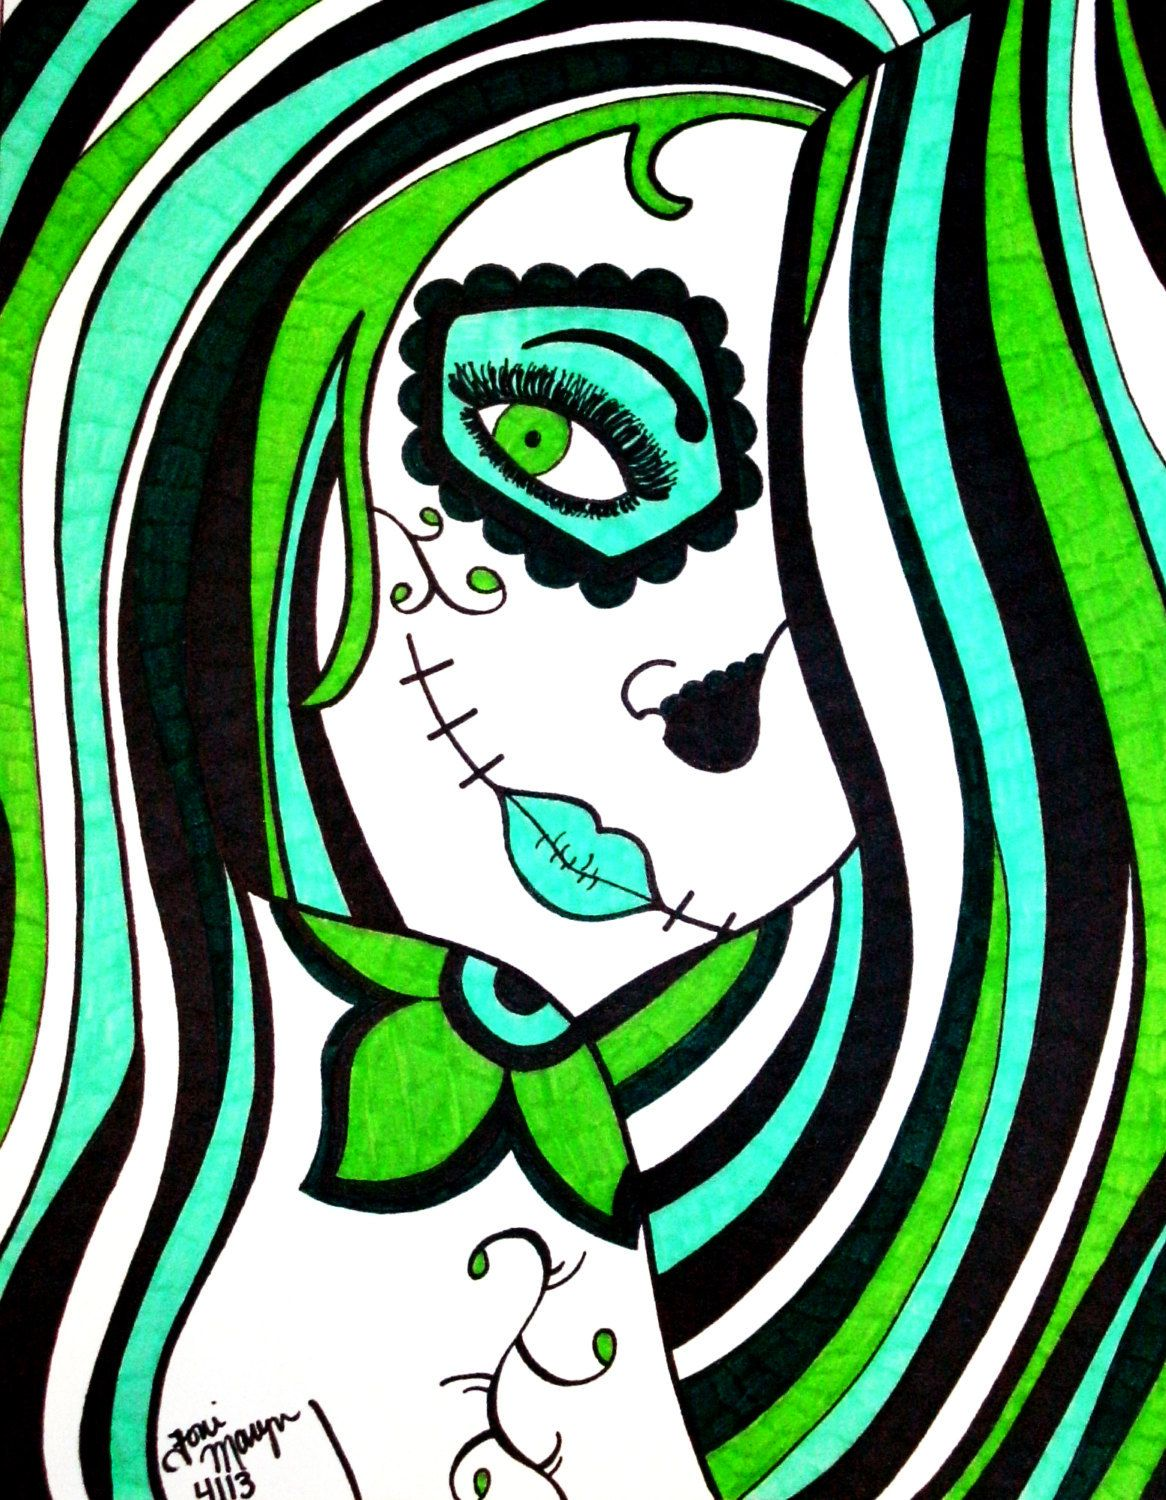 Green Sugar Skull Girl, 8x10 Inch Print, Sugar Skull Print, Dia De Los Muertos, Day of the Dead Art, Alternative Wall Decor, Sugar Skull Art